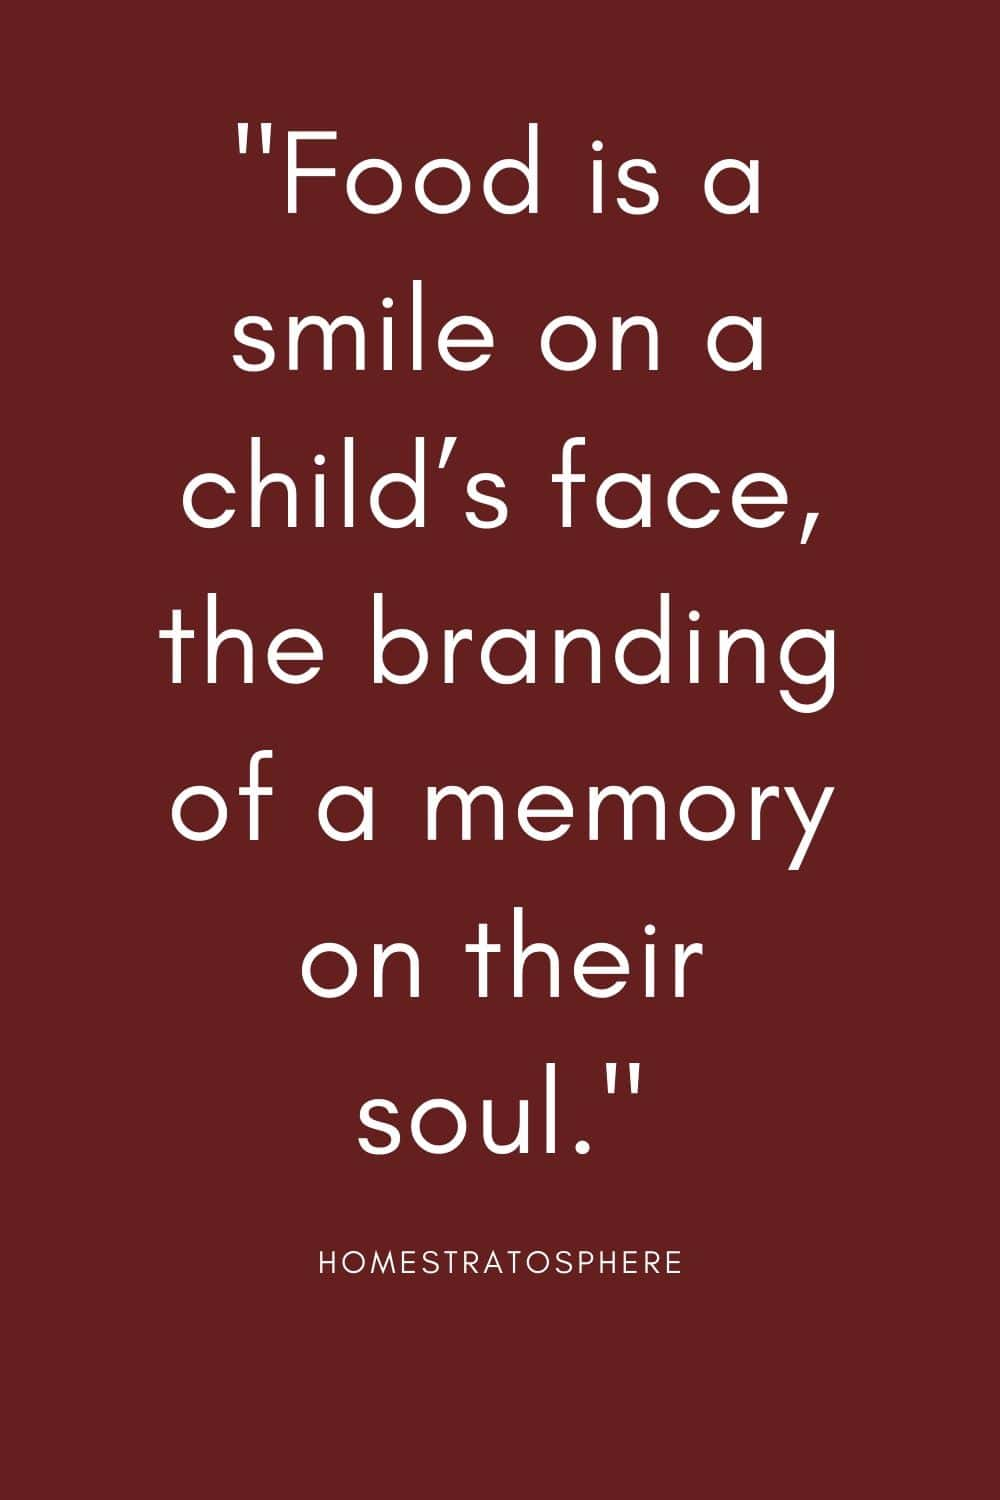 """Food is a smile on a child's face, the branding of a memory on their soul."""